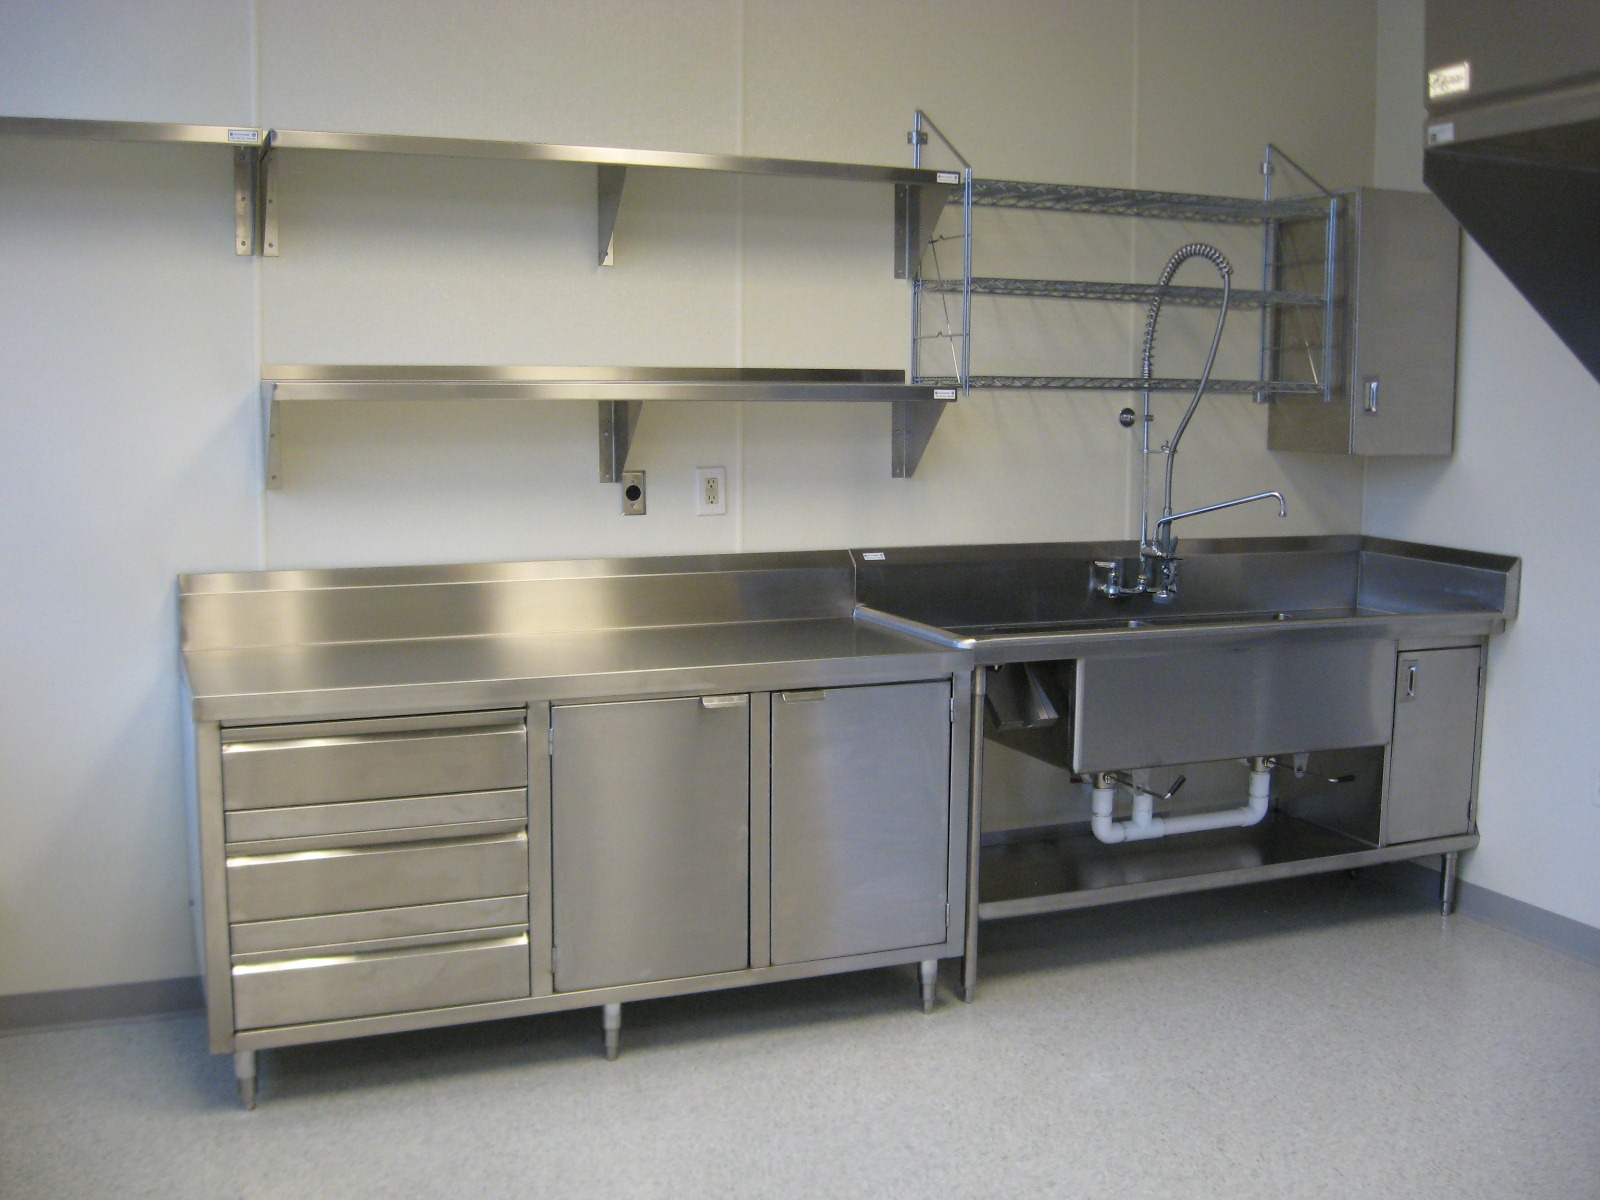 Superbe Good Design Of Stainless Steel Floating Kitchen Shelves And Cabinet